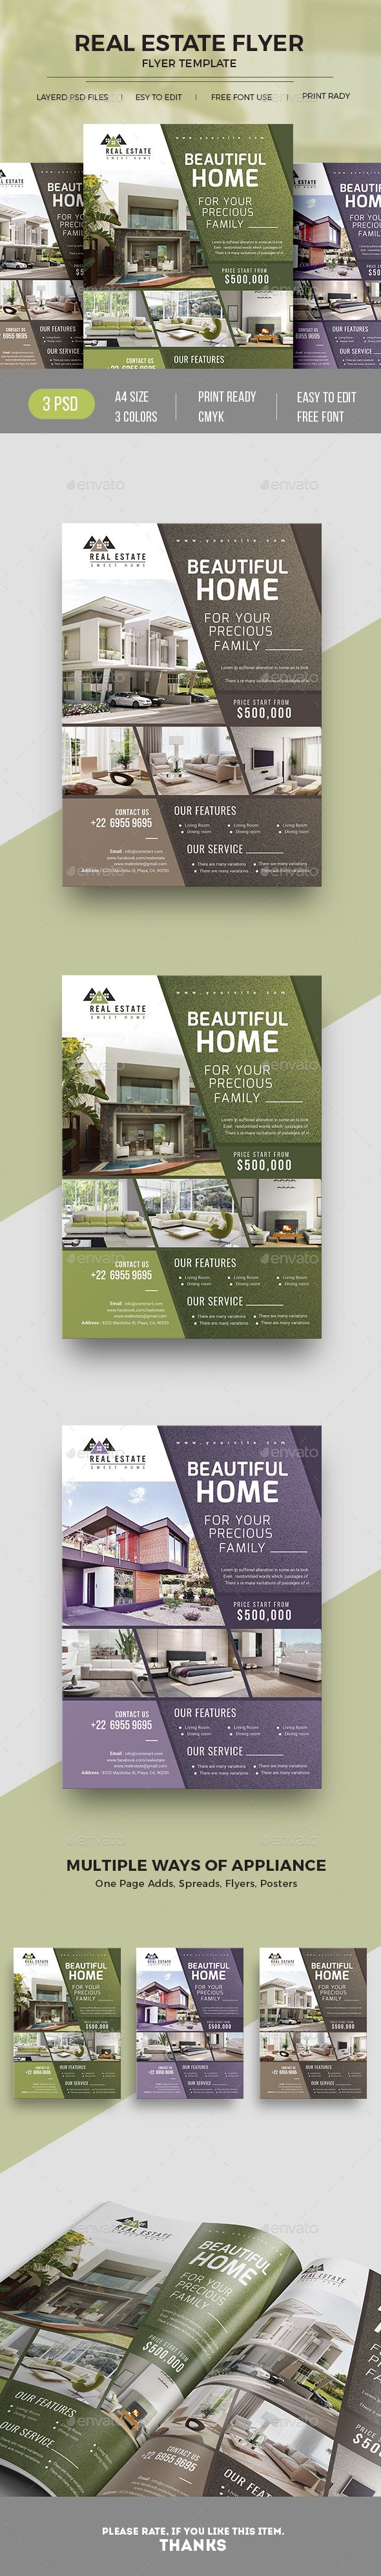 #Real #Estate #Flyer Template PSD. Easy to edit and customize.  3 Different color versions to match your branding.